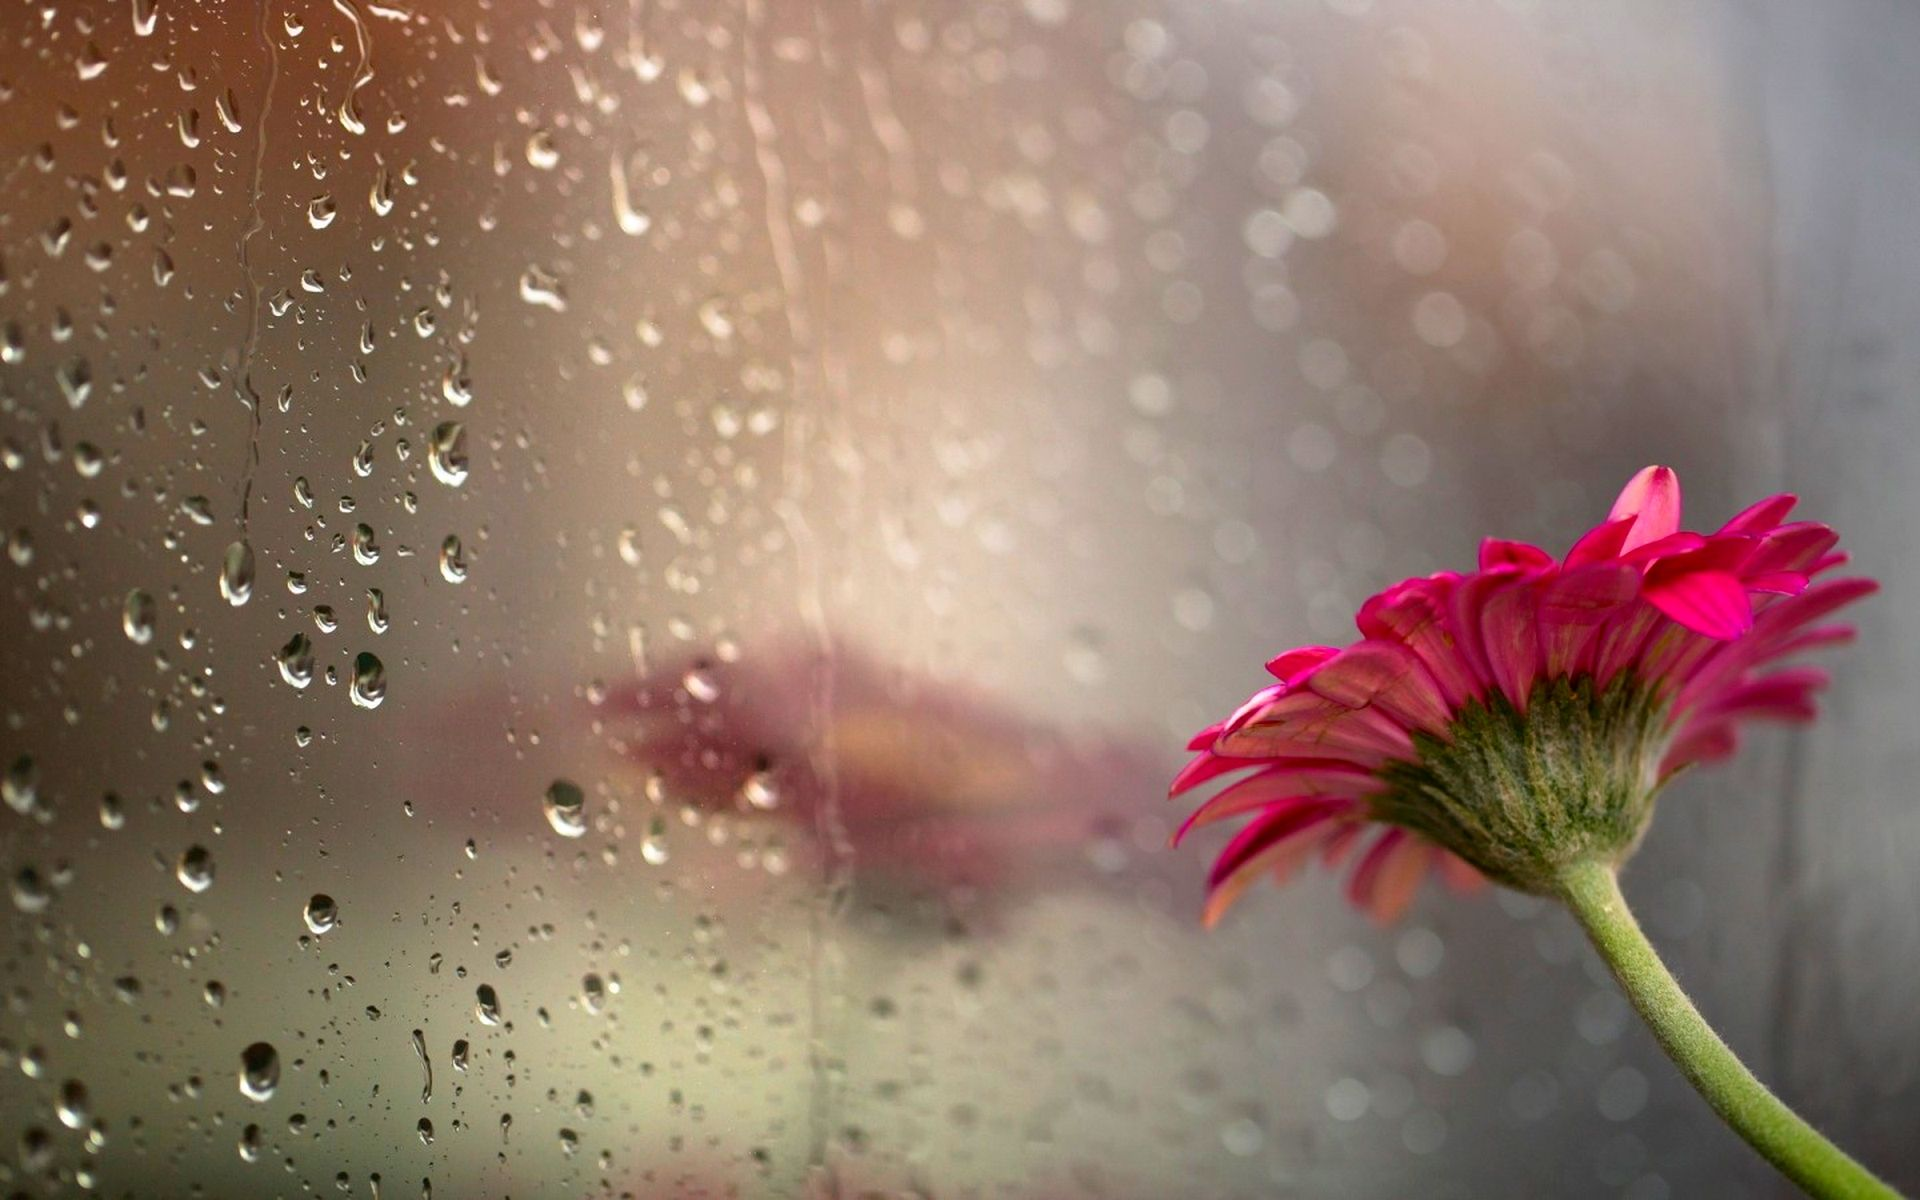 Spring rain wallpaper high resolution natures wallpapers for Monsoon home wallpaper uk